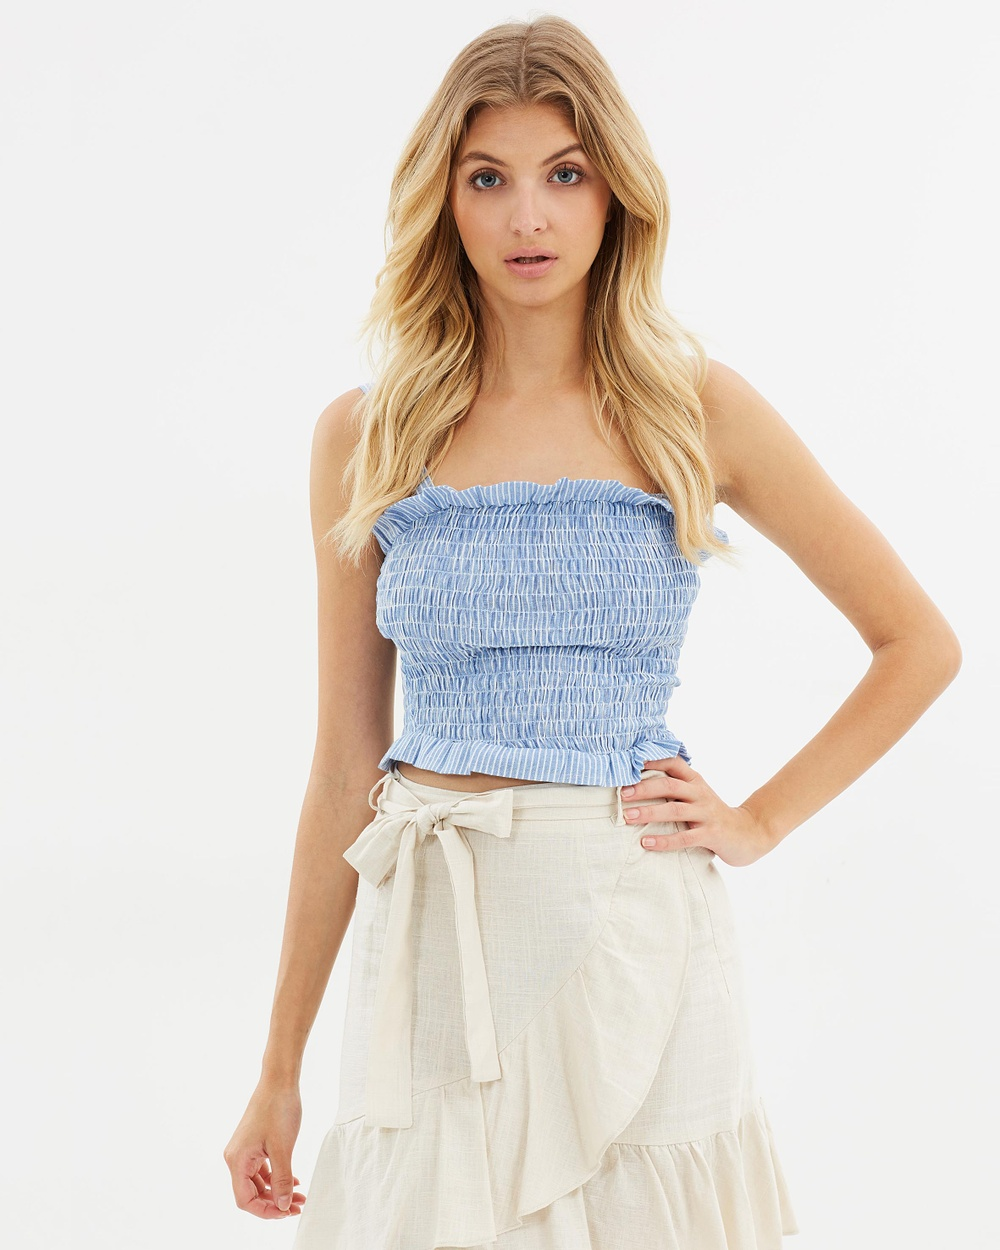 681f5c56b Atmos & Here ICONIC EXCLUSIVE Luna Shirred Frill Top Cropped tops ...